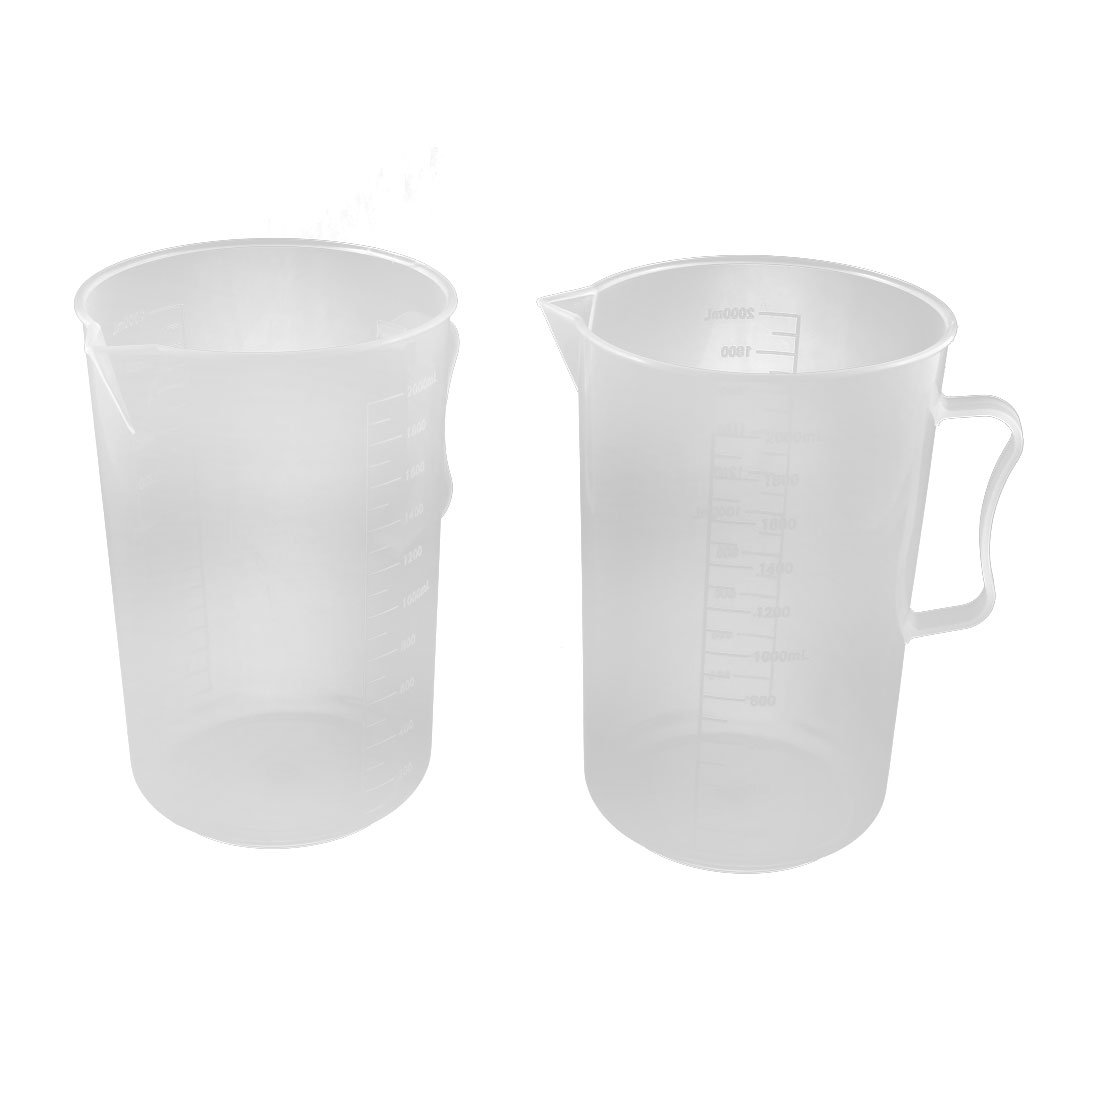 uxcell 2000mL Laboratory Kitchen Water Solution Graduated Measuring Cup 2pcs Clear a16031400ux1527